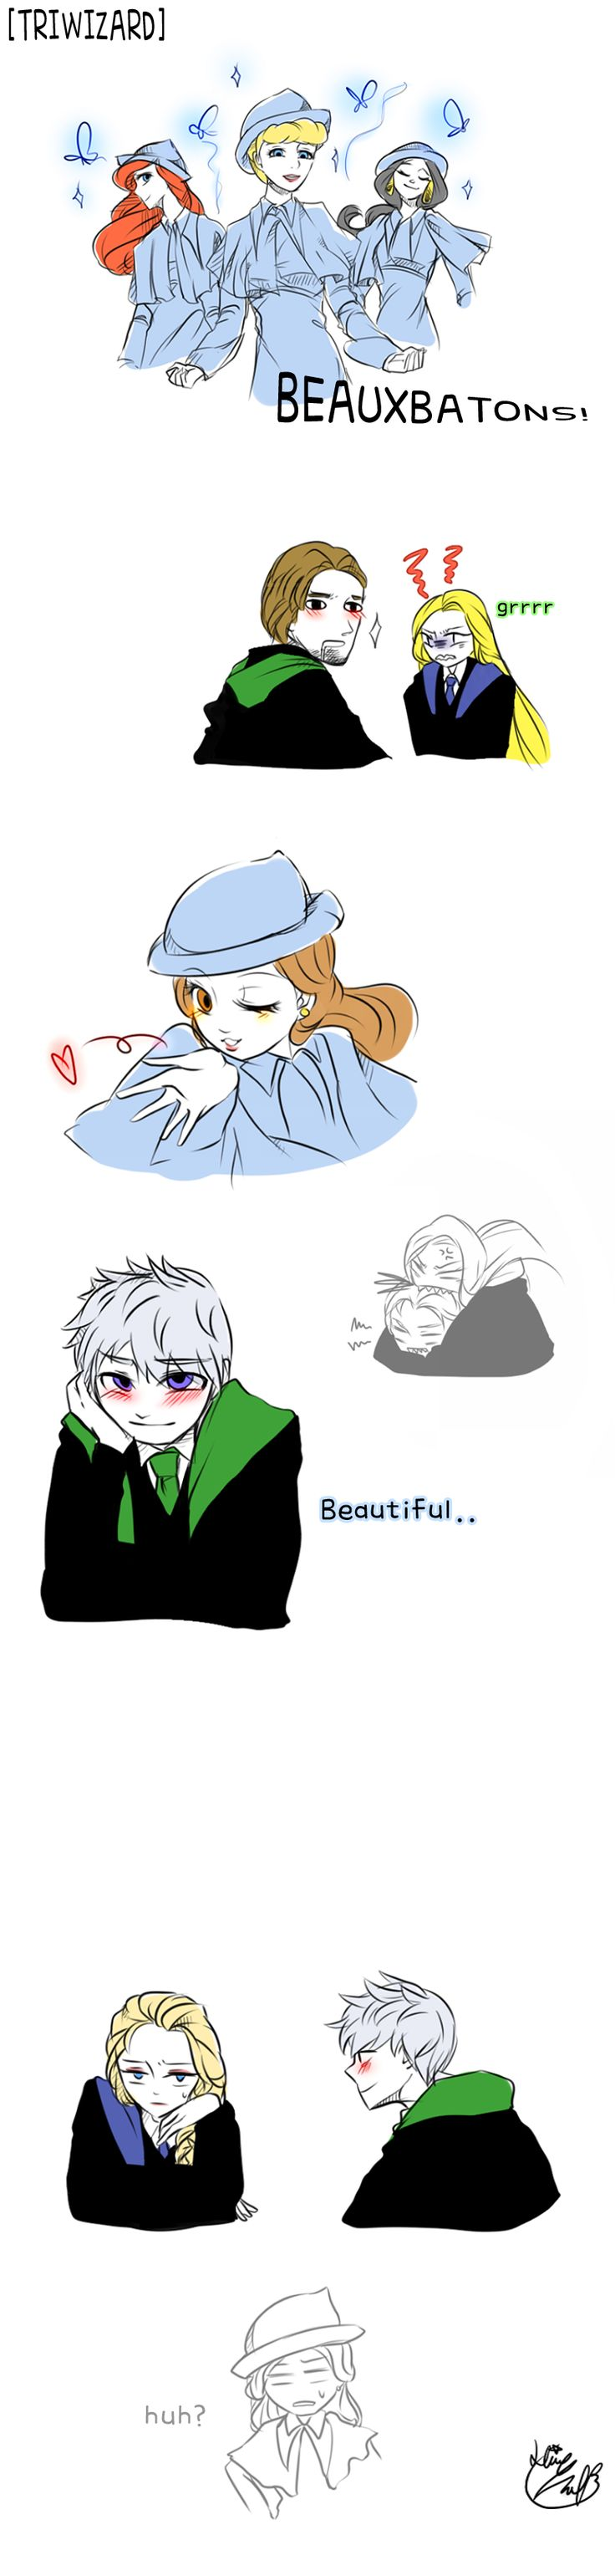 Triwizard-Beauxbatons by Lime-Hael on deviantART   Frozen's Elsa, Rise of the Guardians' Jack Frost, Tangled's Rapunzel and Flynn Rider, Disney's Cinderella, The Little Mermaid's Ariel, Aladdin's Jasmine, and Beauty and the Beast's Belle   J.K. Rowling's Harry Potter